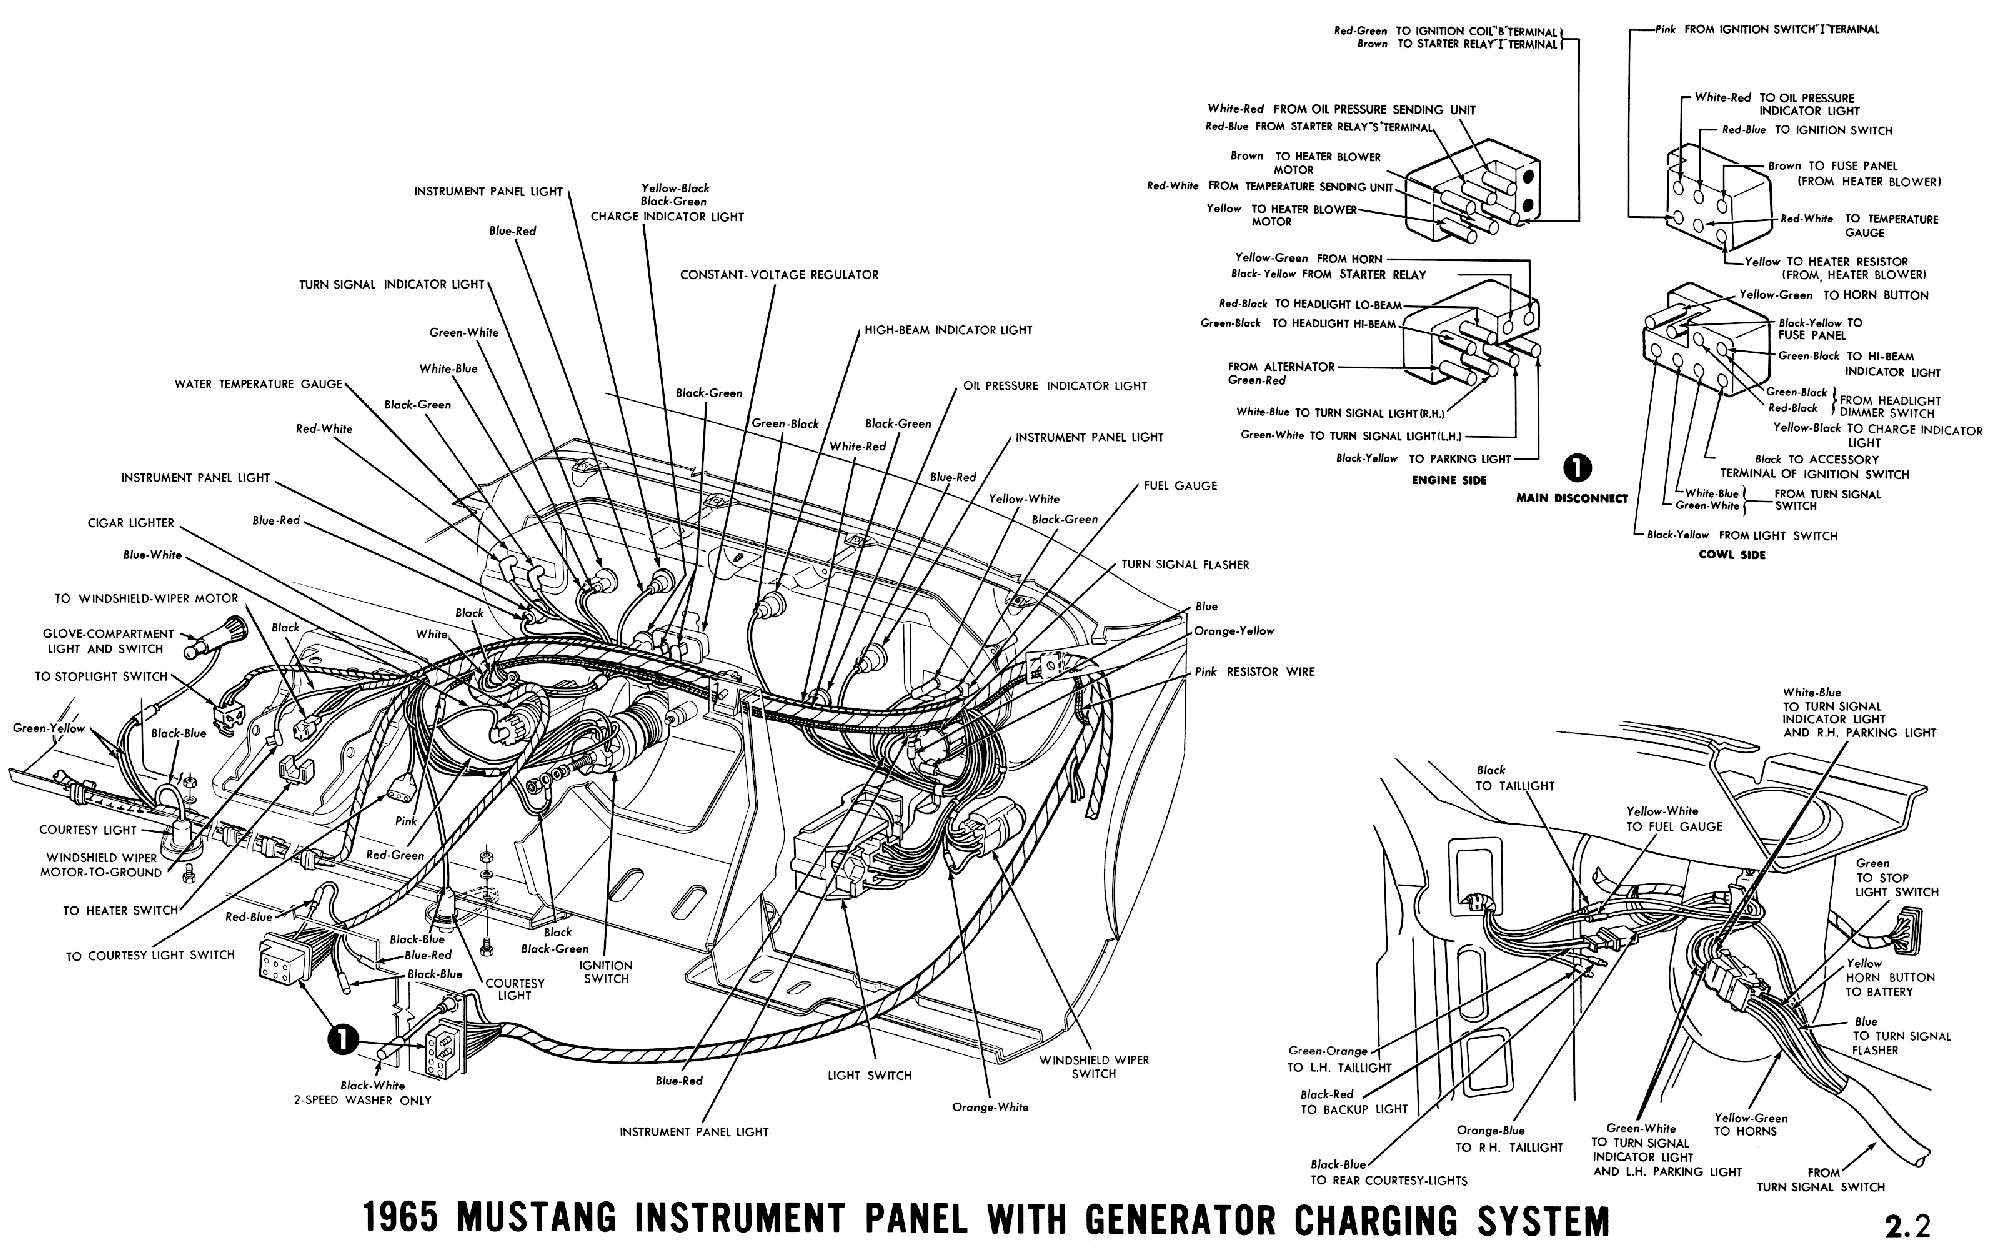 Wiring Harness Diagram Ford Mustang Will Be A Thing Rj31x 1965 Diagrams Average Joe Restoration Rh Averagejoerestoration Com 1993 1969